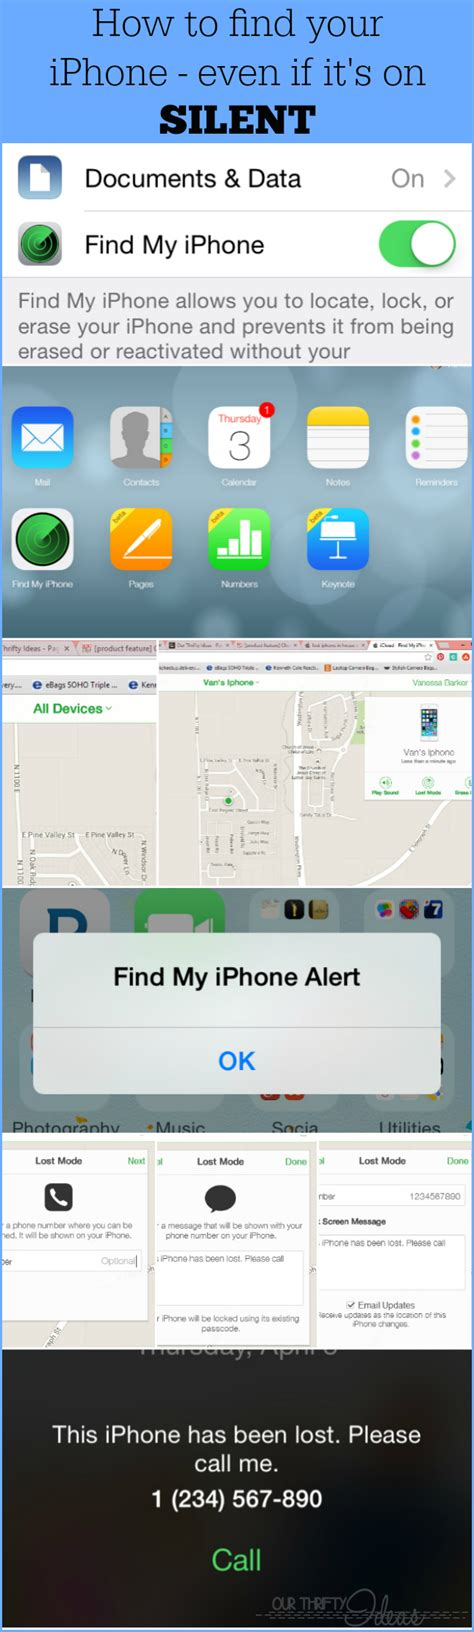 find your lost iphone even when it s silent and lost in your home